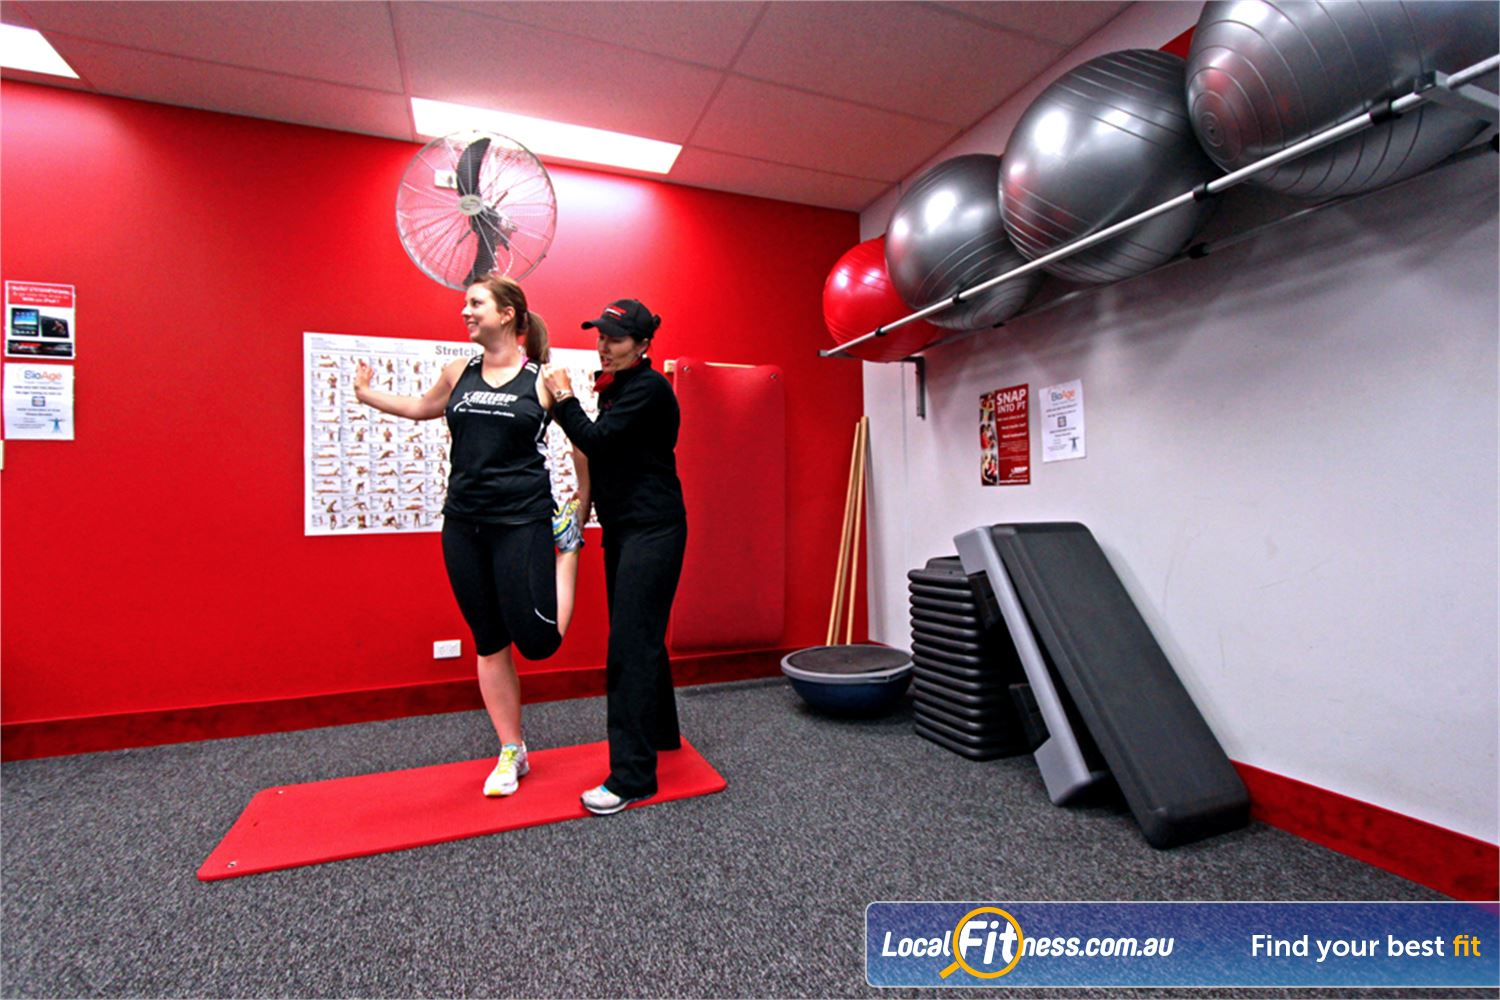 Snap Fitness Near Heidelberg West Dedicated stretching and abs area.